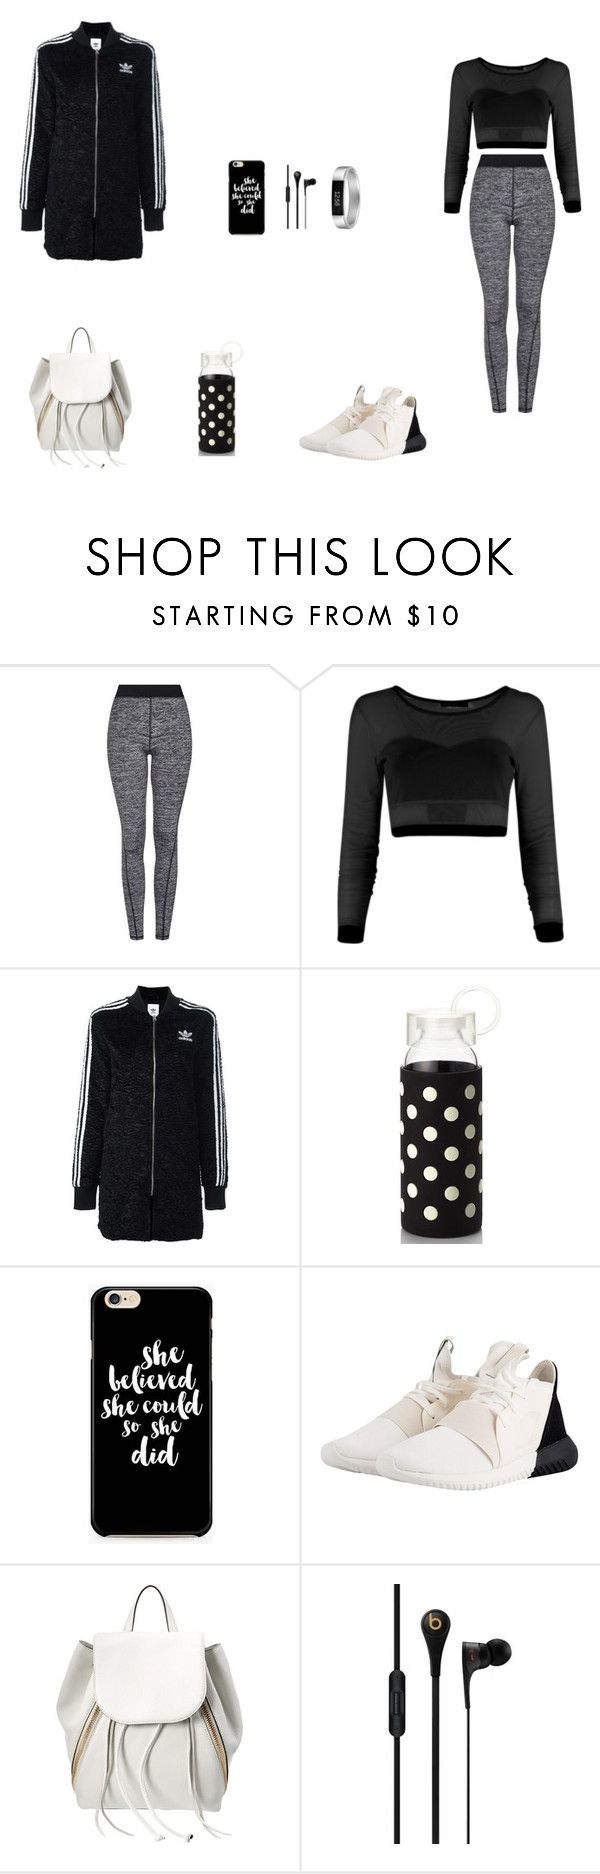 """""""Back to the Gym!"""" by julianaf121 ❤ liked on Polyvore featuring Topshop, adidas Originals, Kate Spade, Rebecca Minkoff, MCM and Fitbit"""